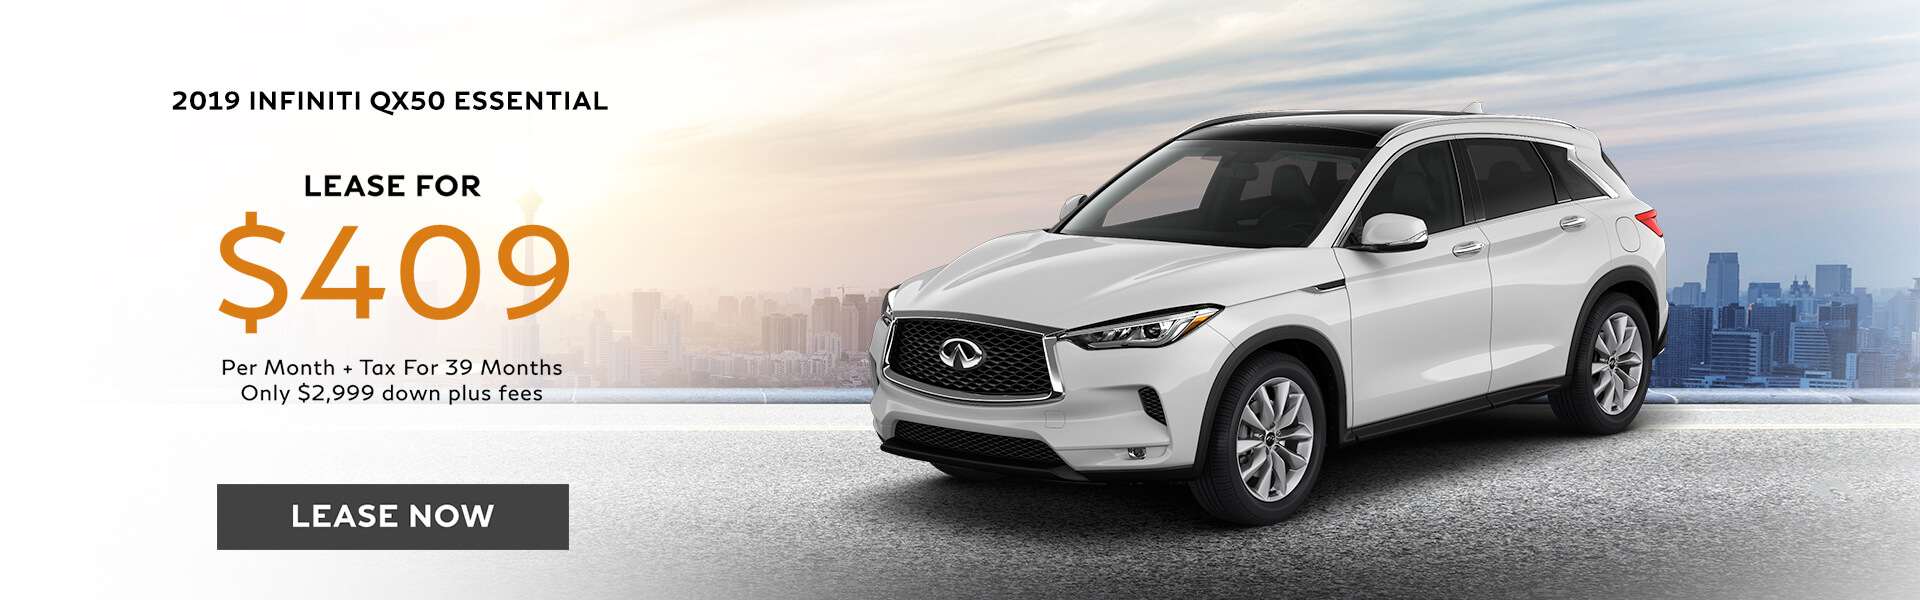 QX50 ESSENTIAL - Lease for $409